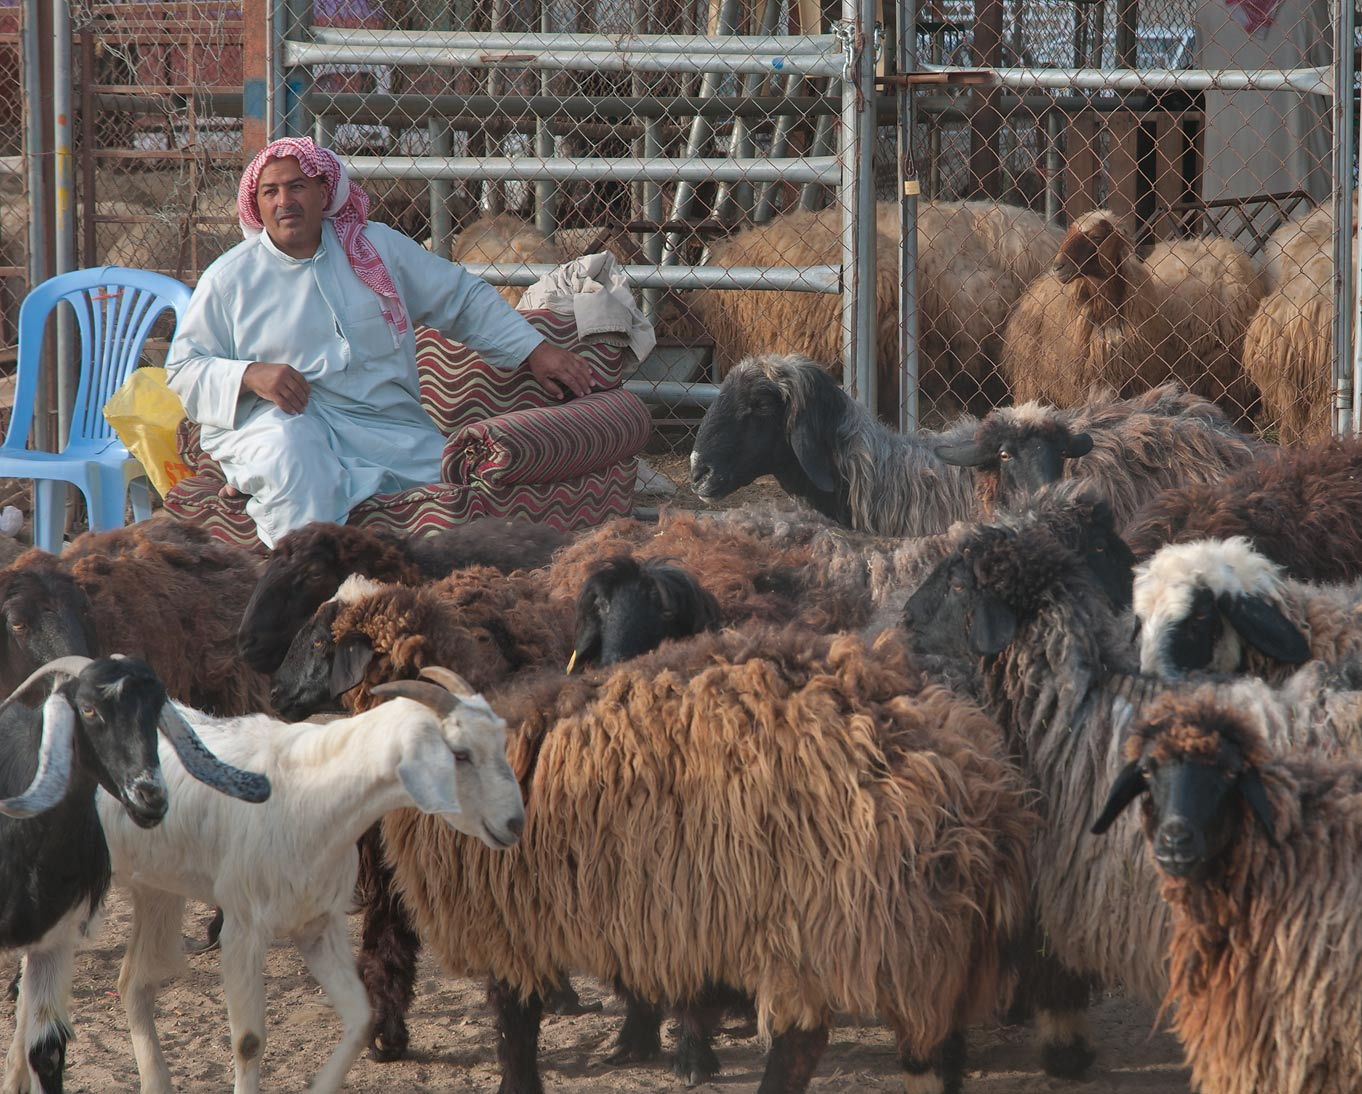 A sitting person with goats in Wholesale Animal Market. Doha, Qatar